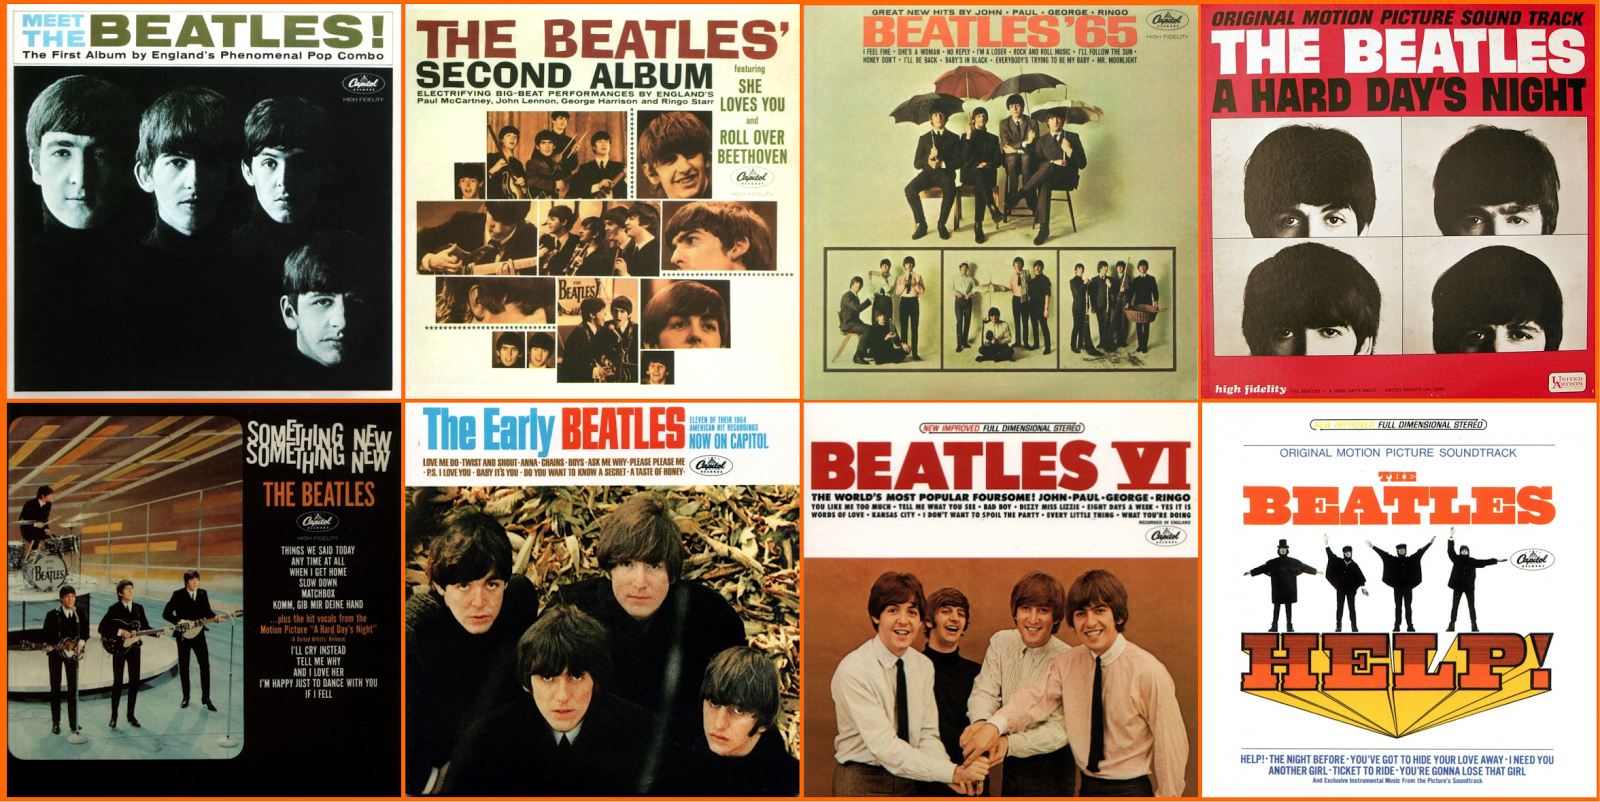 the biography of the beatles The beatles were an english rock band formed in liverpool in 1960 with members john lennon, paul mccartney, george harrison and ringo starr, they became widely regarded as the foremost and most influential act of the rock era.